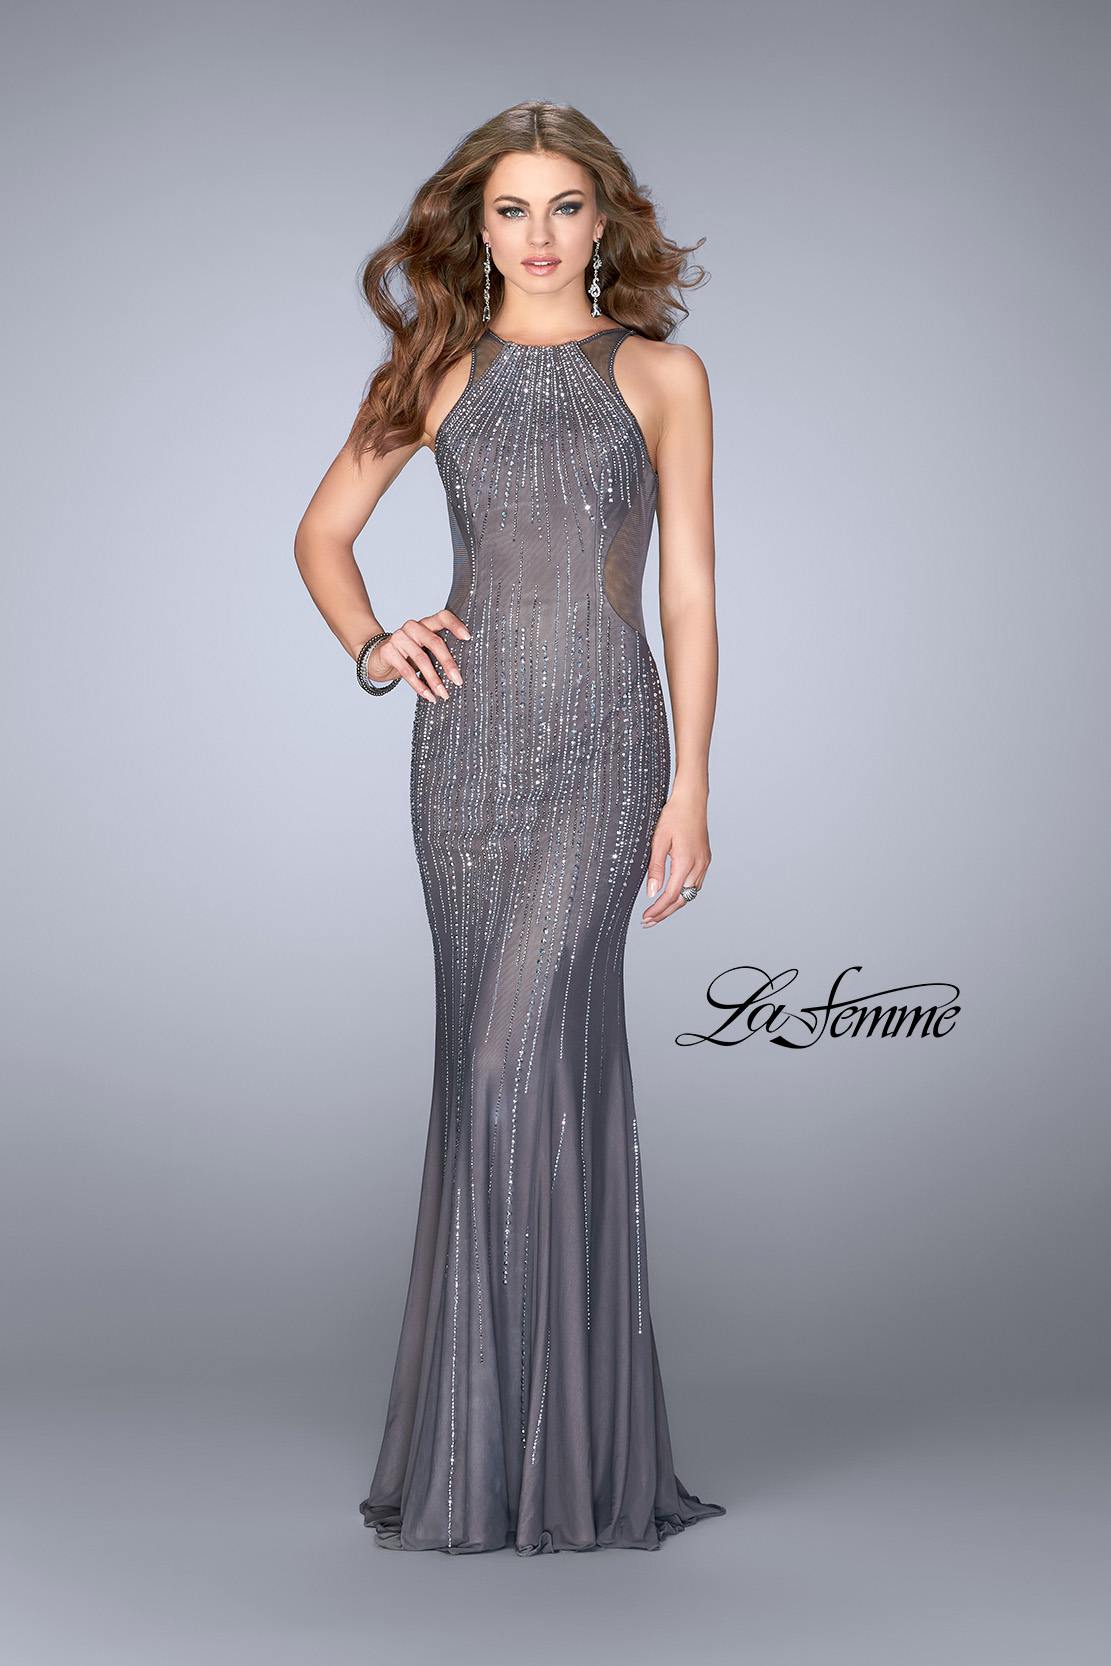 La Femme Beaded Dress